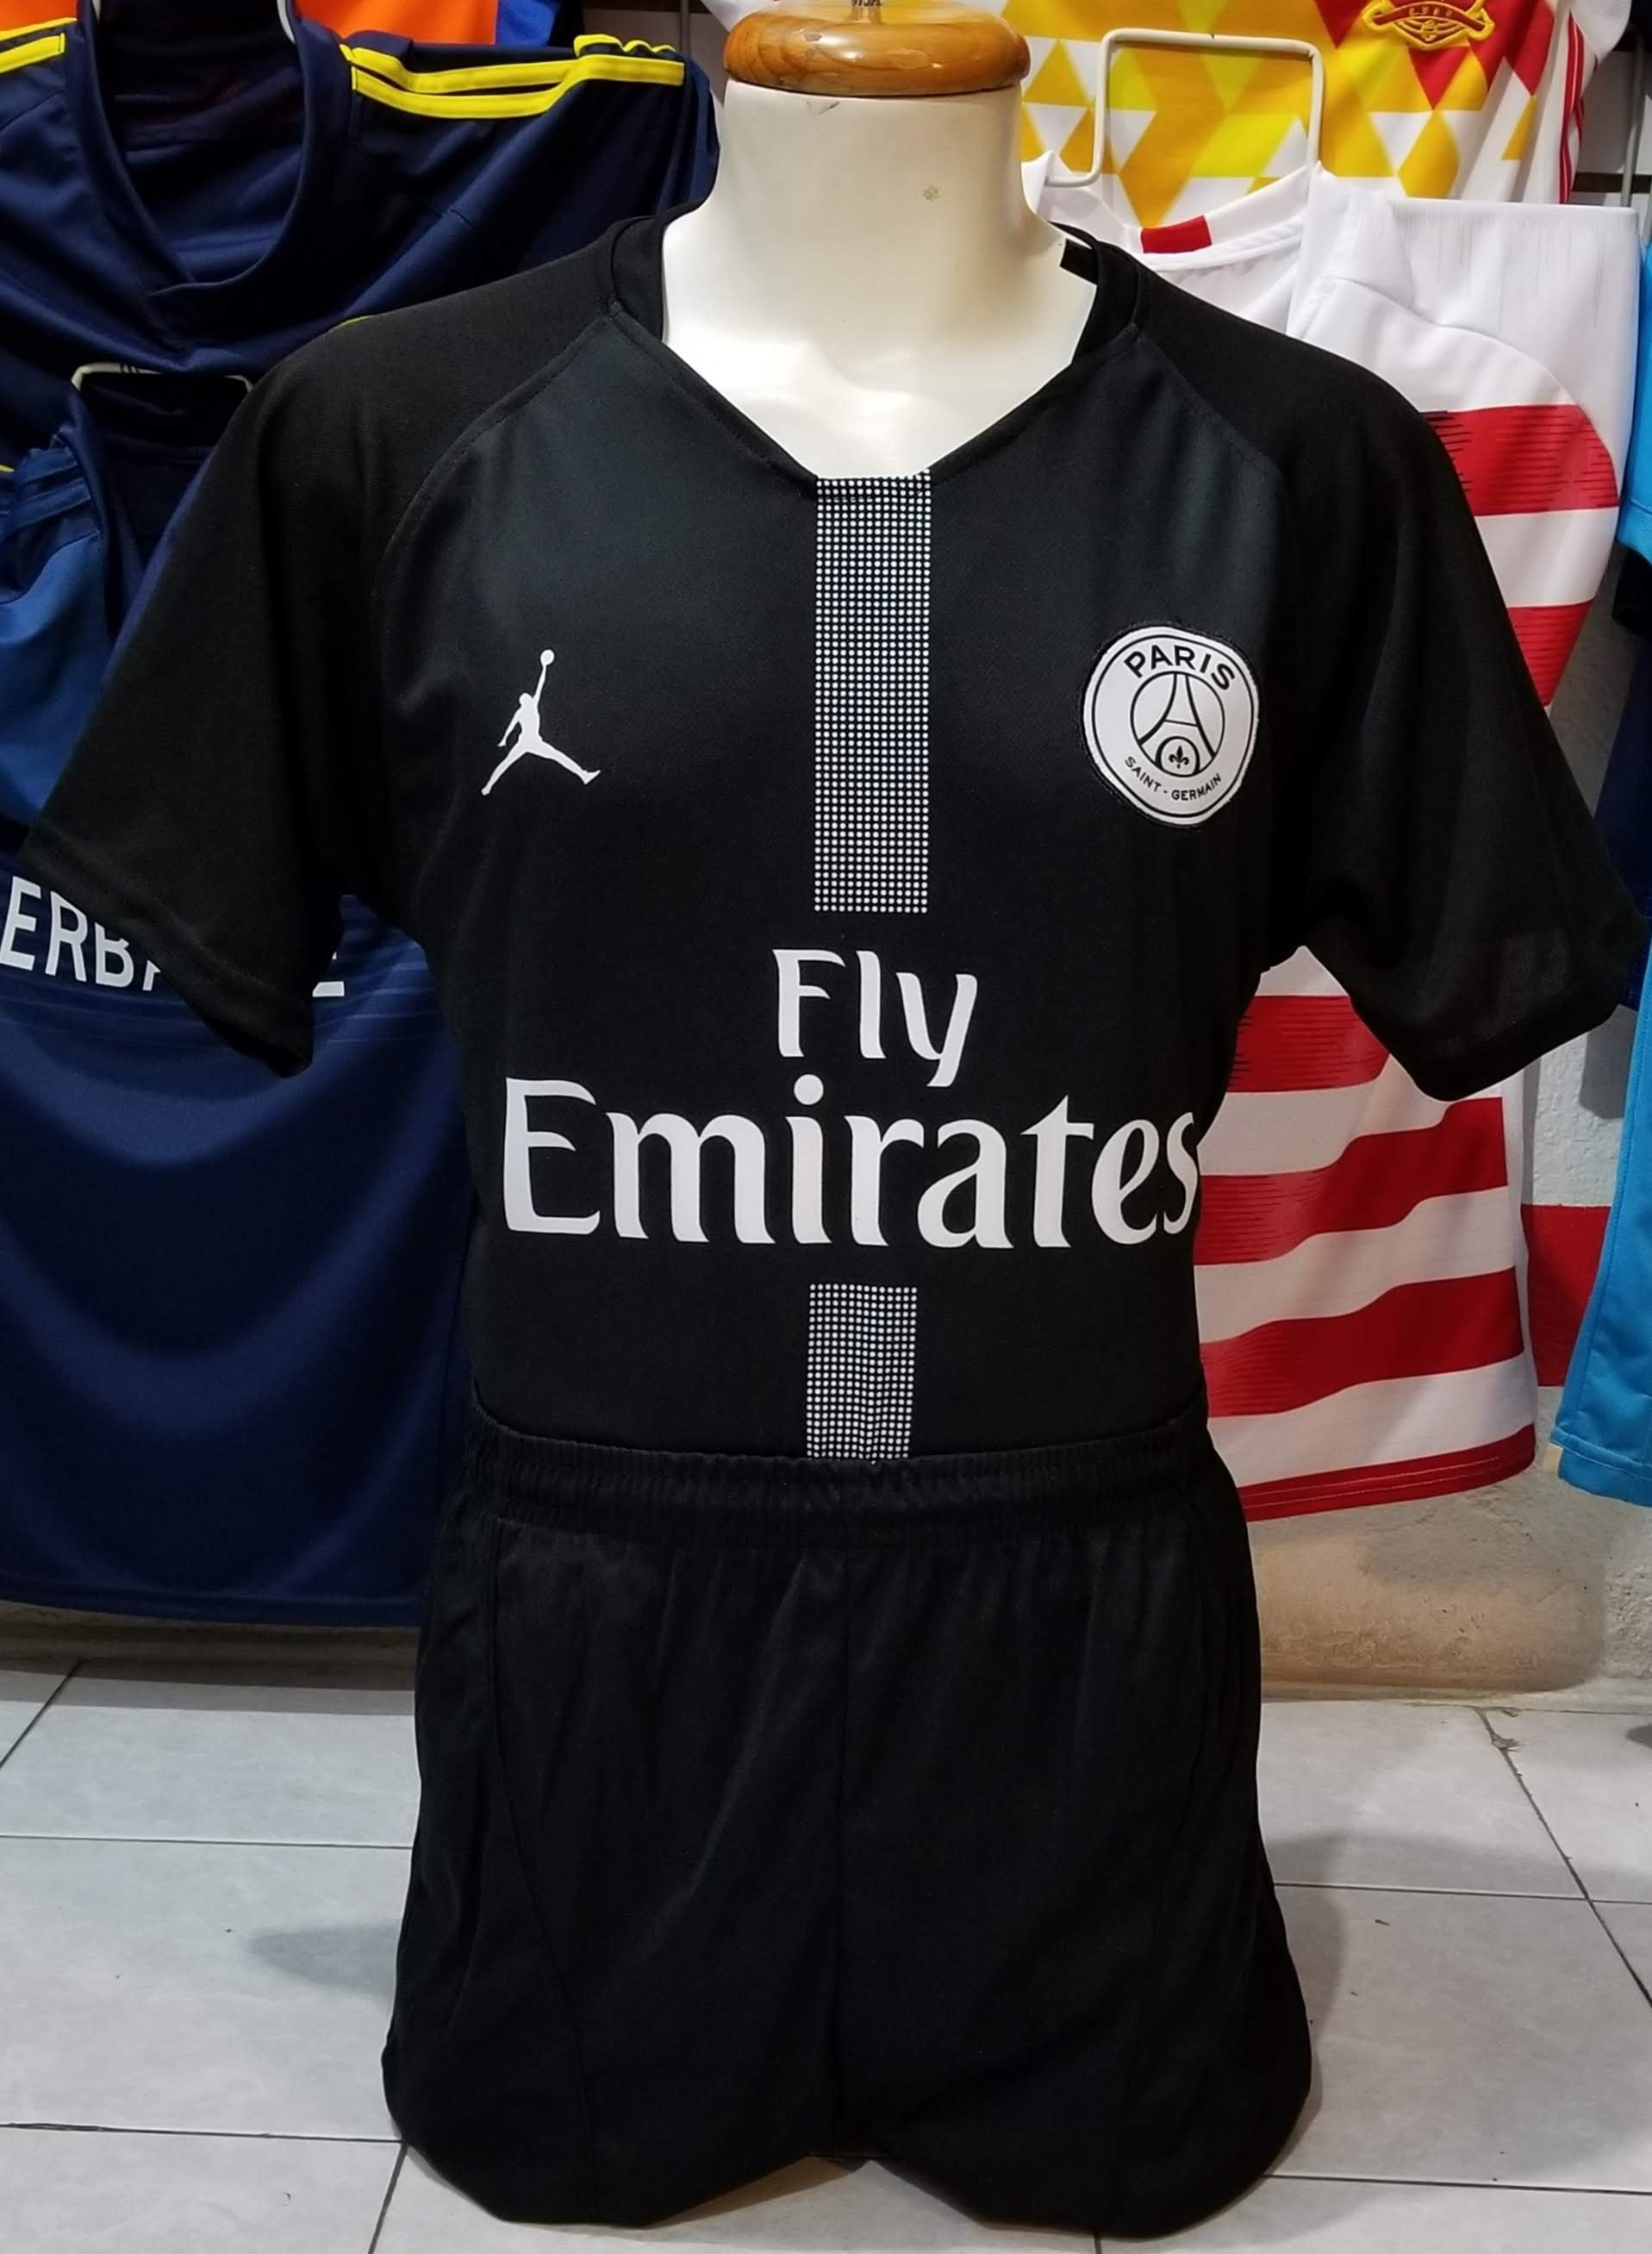 A la venta ya los 3 uniformes del Paris St. Germain 2018 9818d507bb2a1